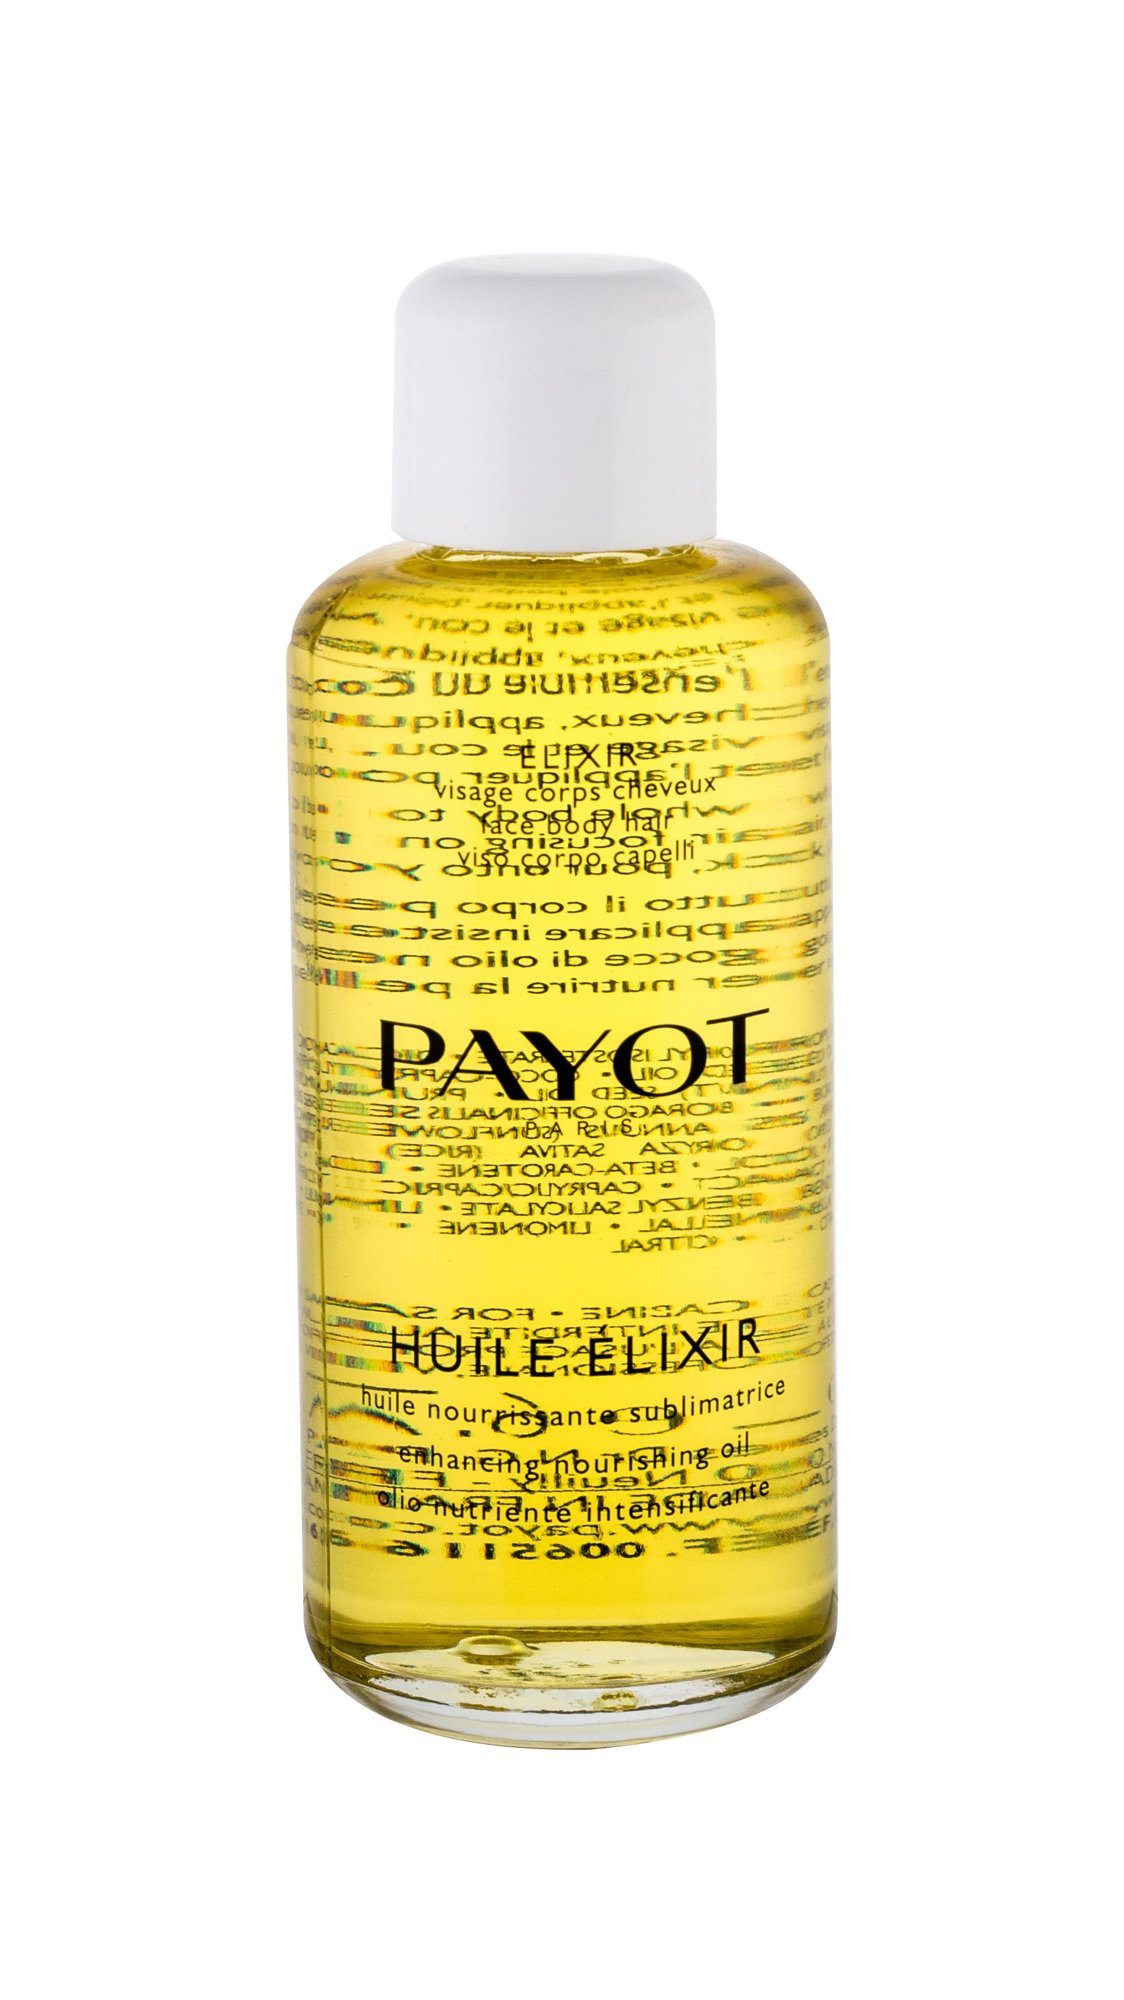 PAYOT Body Élixir Body Oil 200ml  Enhancing Nourishing Oil